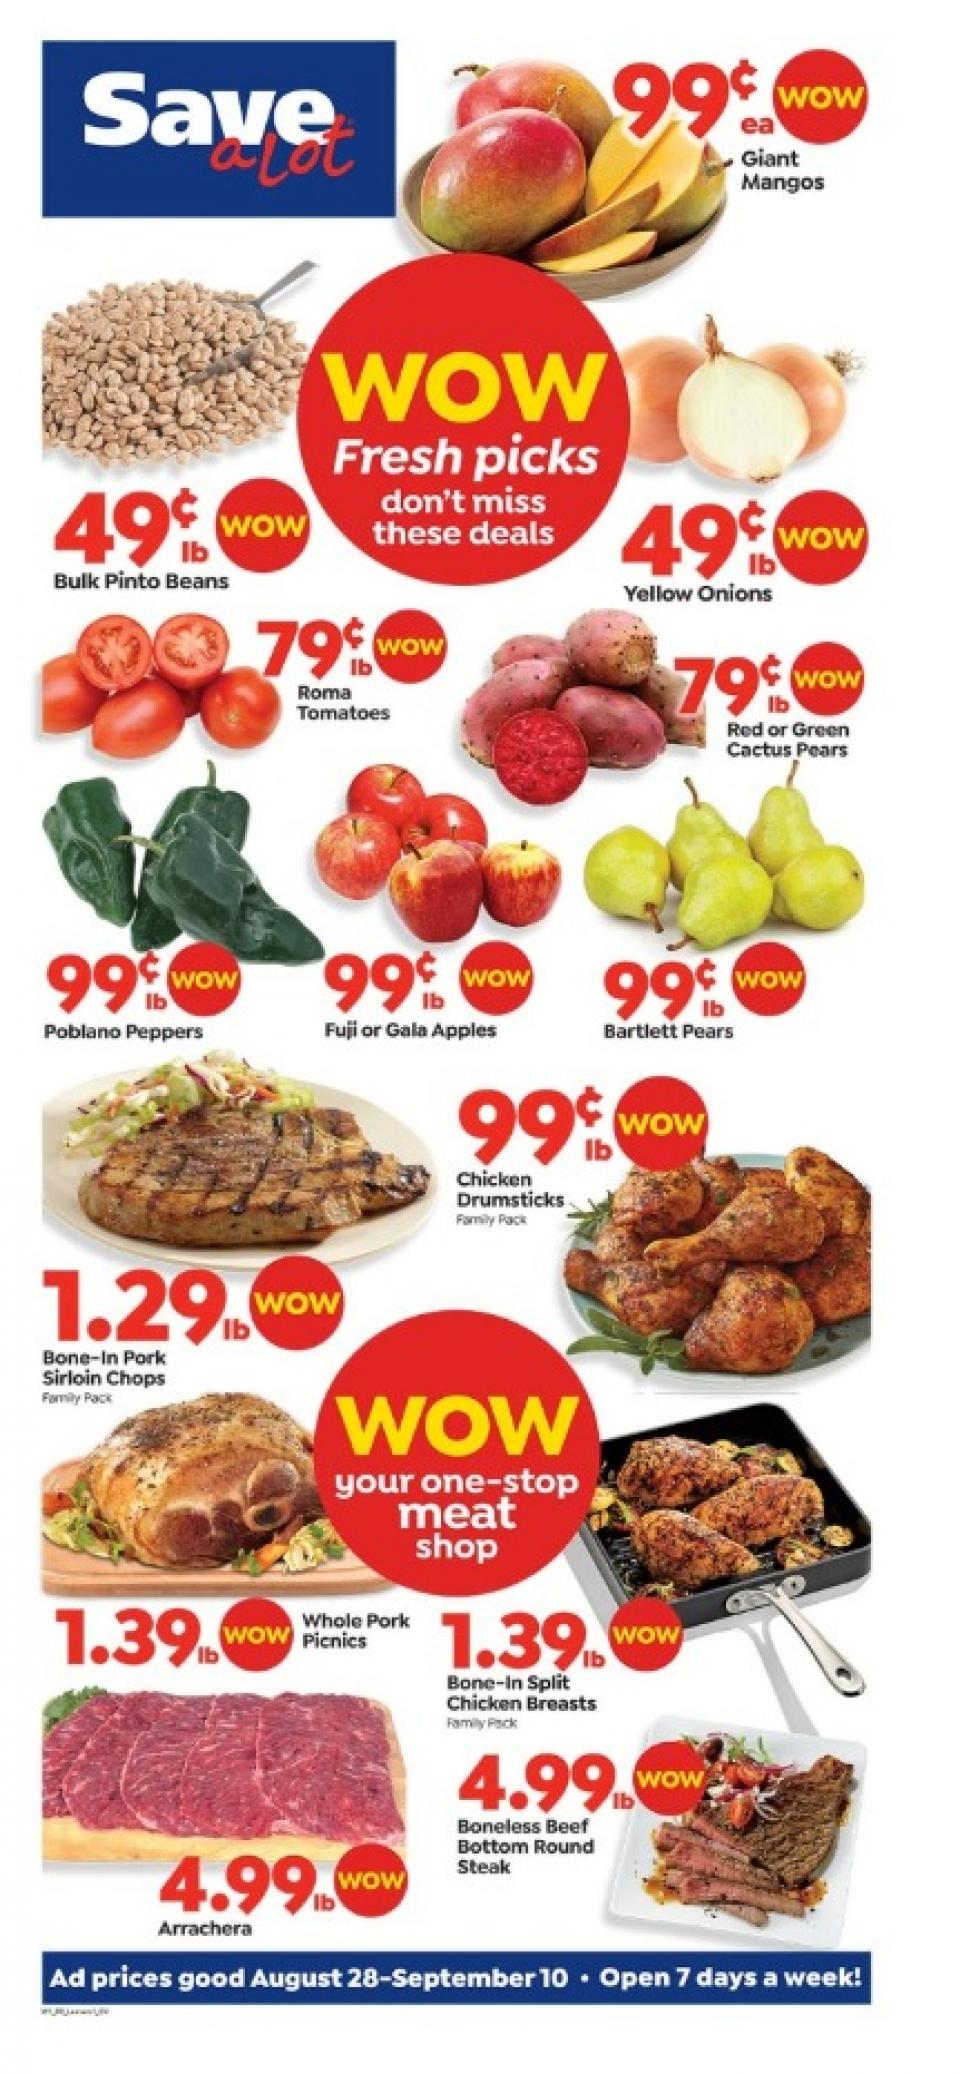 save a lot weekly ad aug 28 sep 10 2019